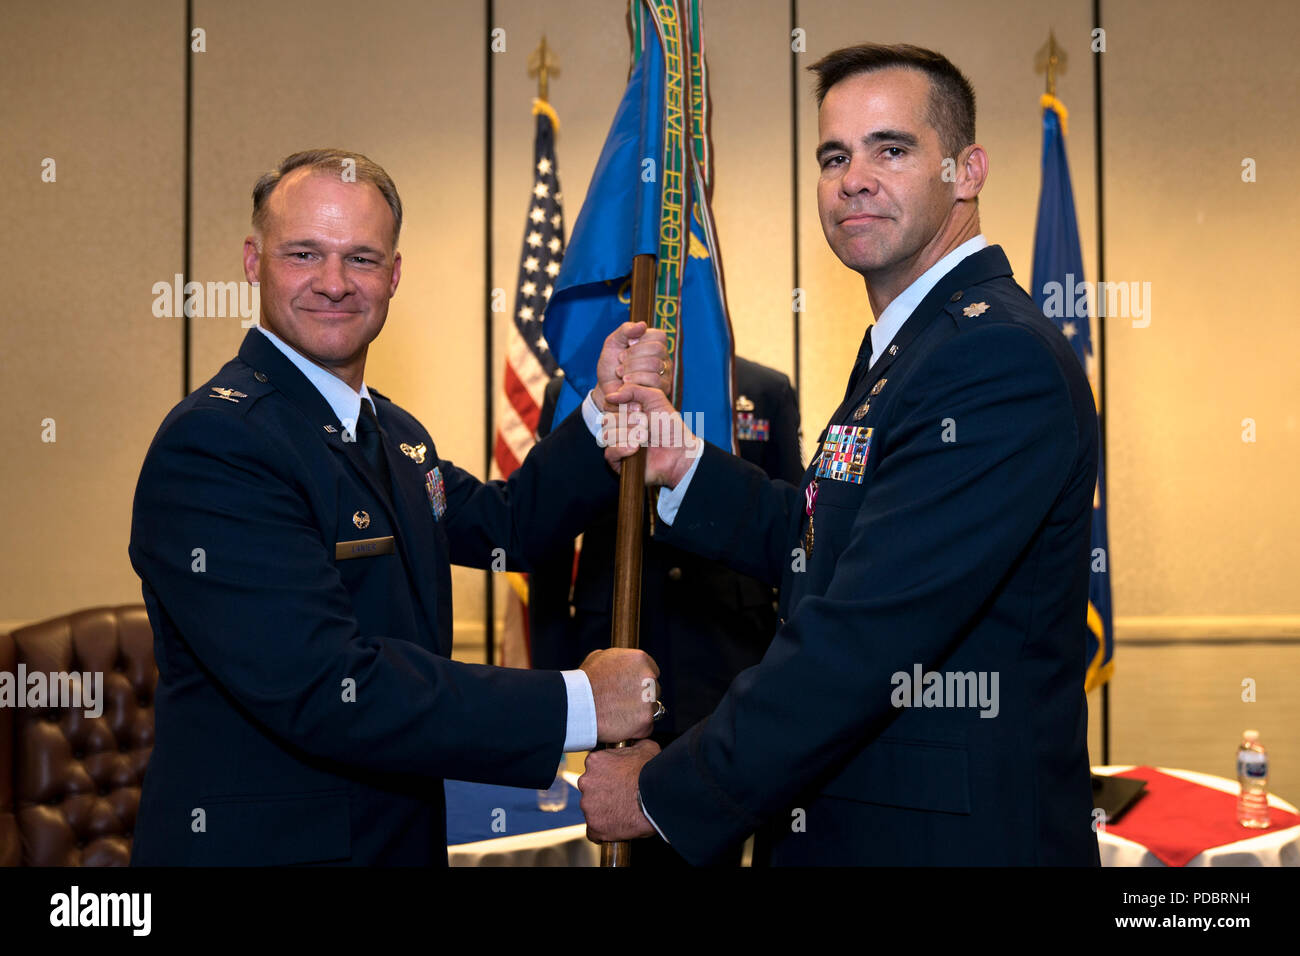 Col. Stephen Lanier, left, 315th Operations Group commander, receives the 4th Combat Camera Squadron guidon from Lt. Col. Hamilton Underwood, 4th CTCS commander, during a change of command ceremony Aug. 3, 2018, at Joint Base Charleston, S.C. The 4th CTCS is the only Reserve combat camera unit and is a rapid response force, specializing in aerial documentation. Underwood joined the unit in March 2001 and served a variety of positions before taking command for the first time in 2014. (U.S. Air Force photo by Tech. Sgt. Jamal D. Sutter) Stock Photo